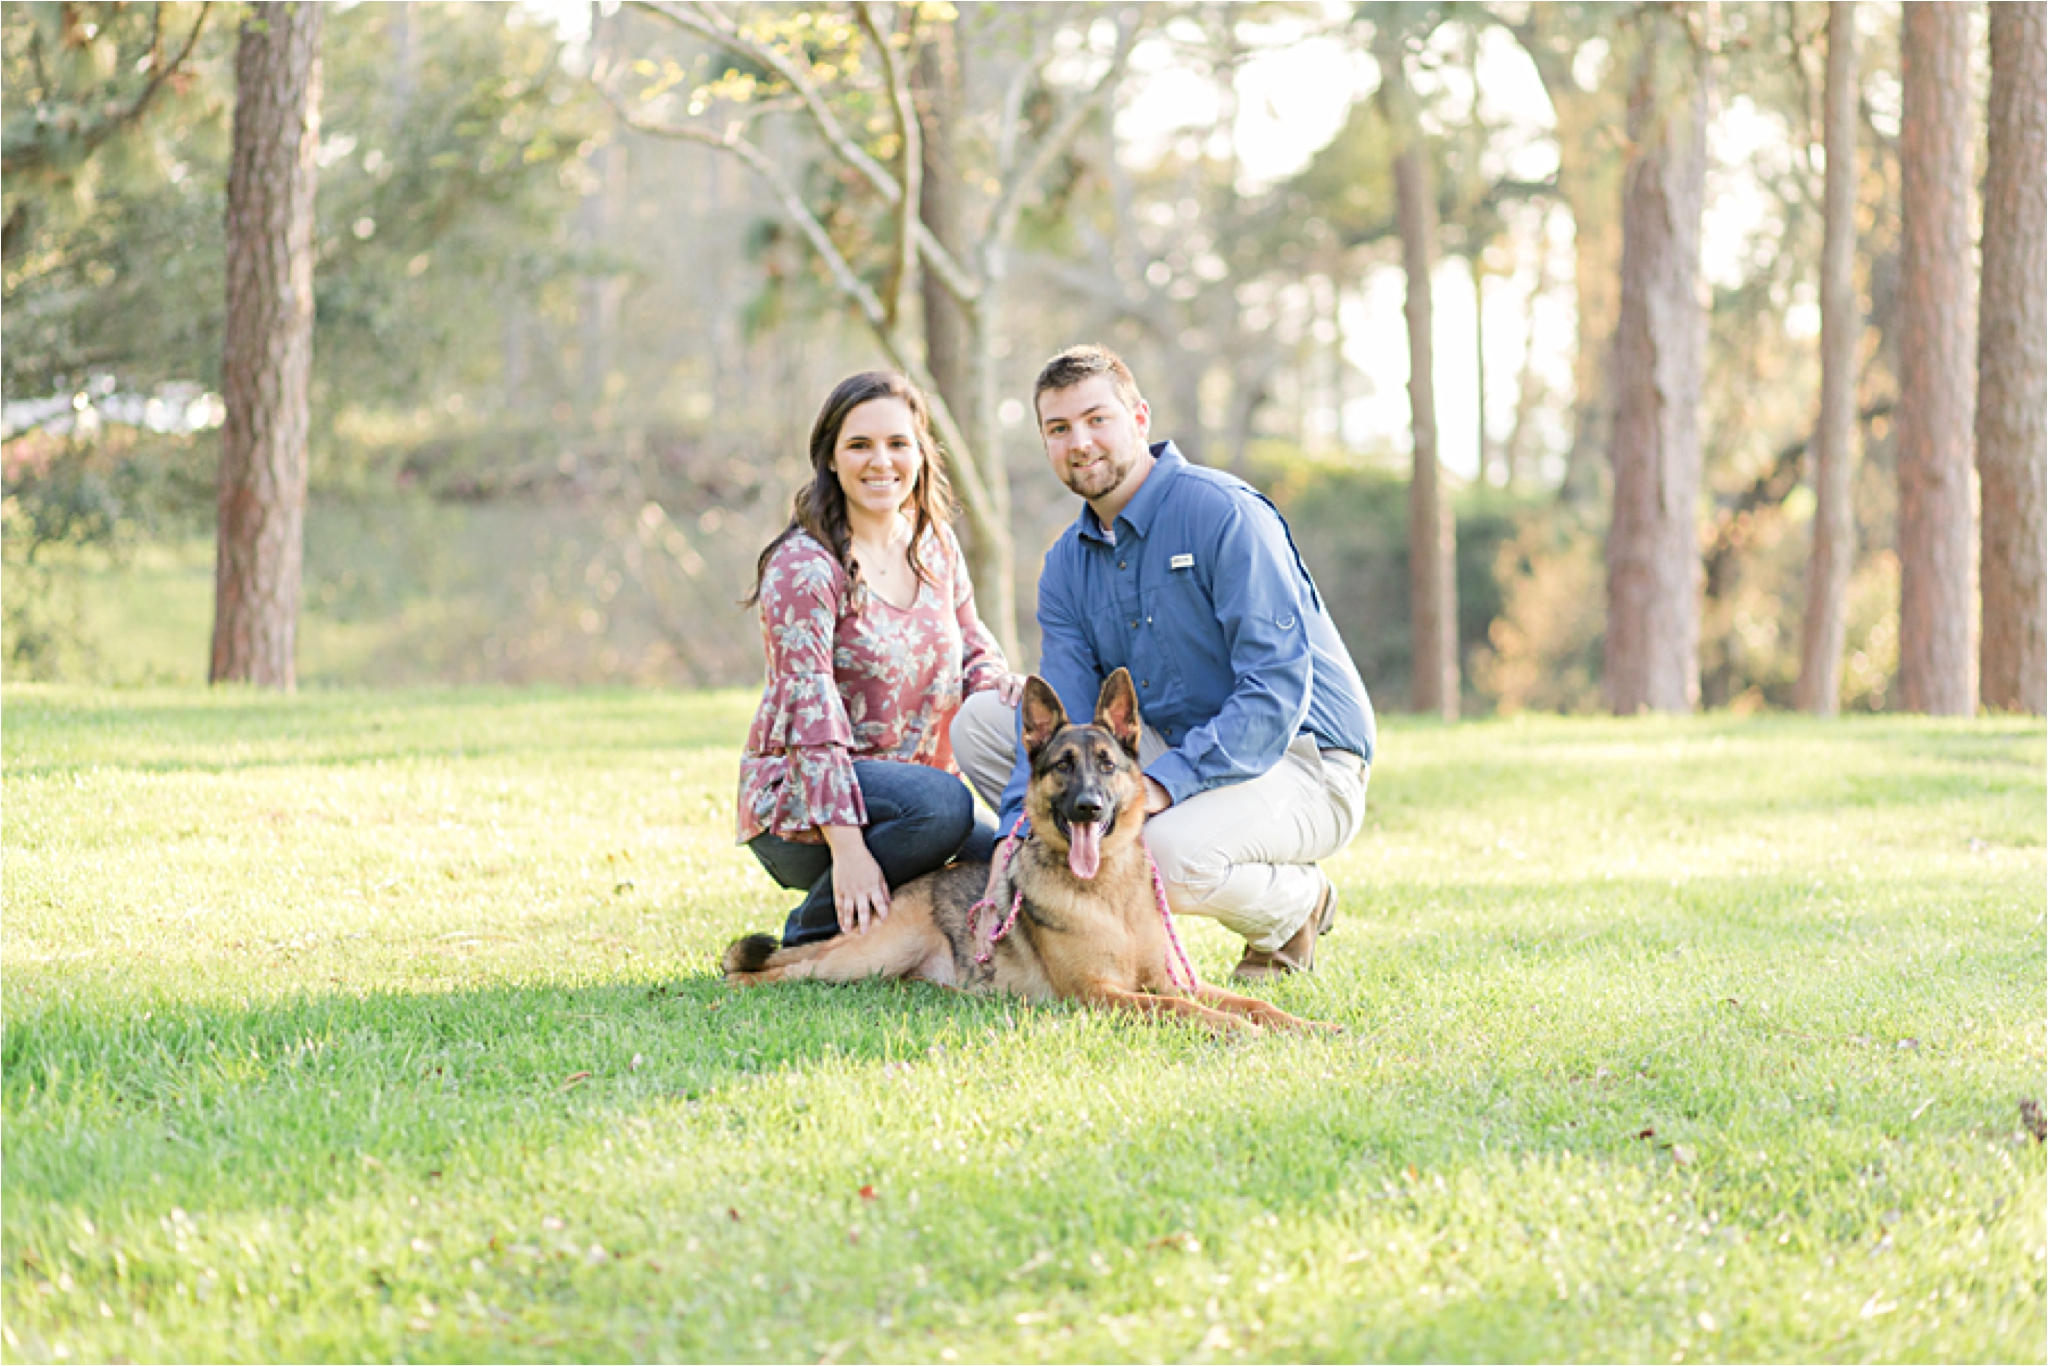 Fairhope Alabama Engagement Session Photographer | Danielle + Taylor